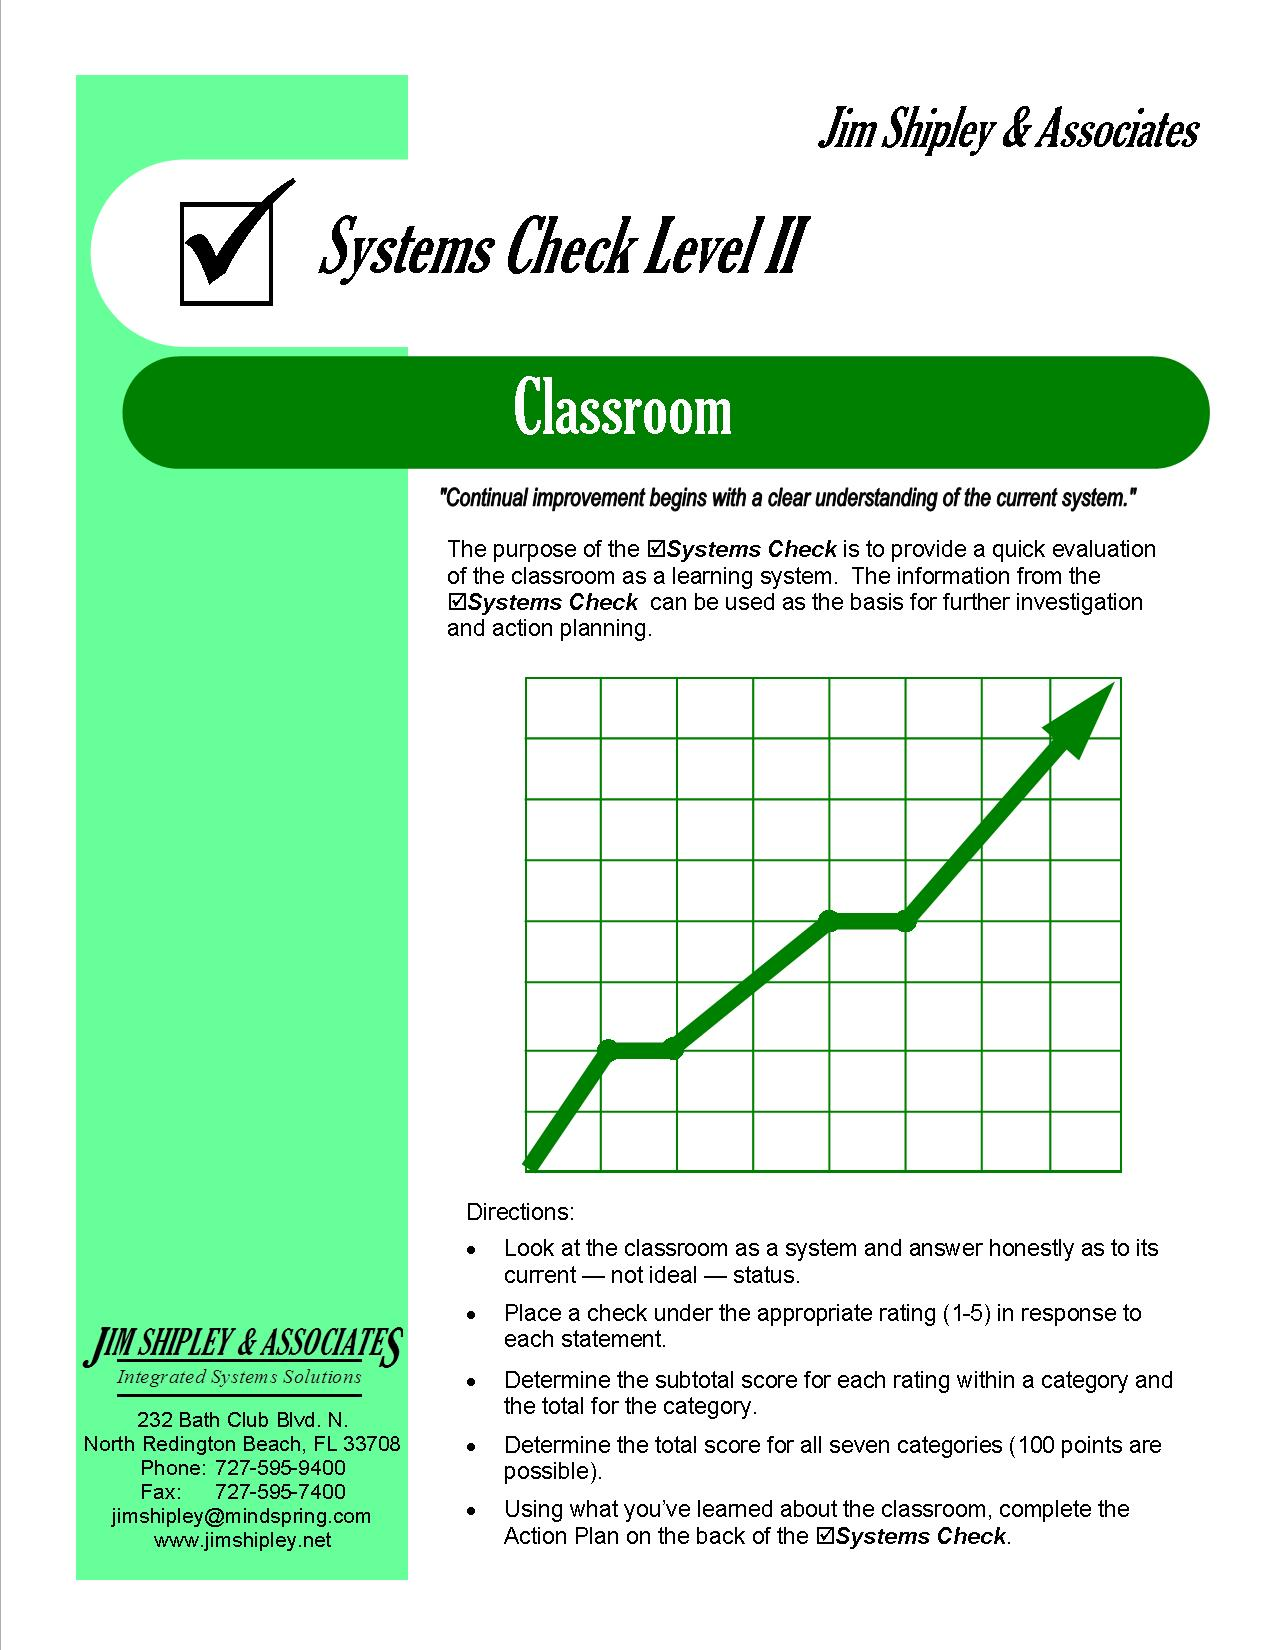 SCC - Classroom Systems Check Level II Cover Image